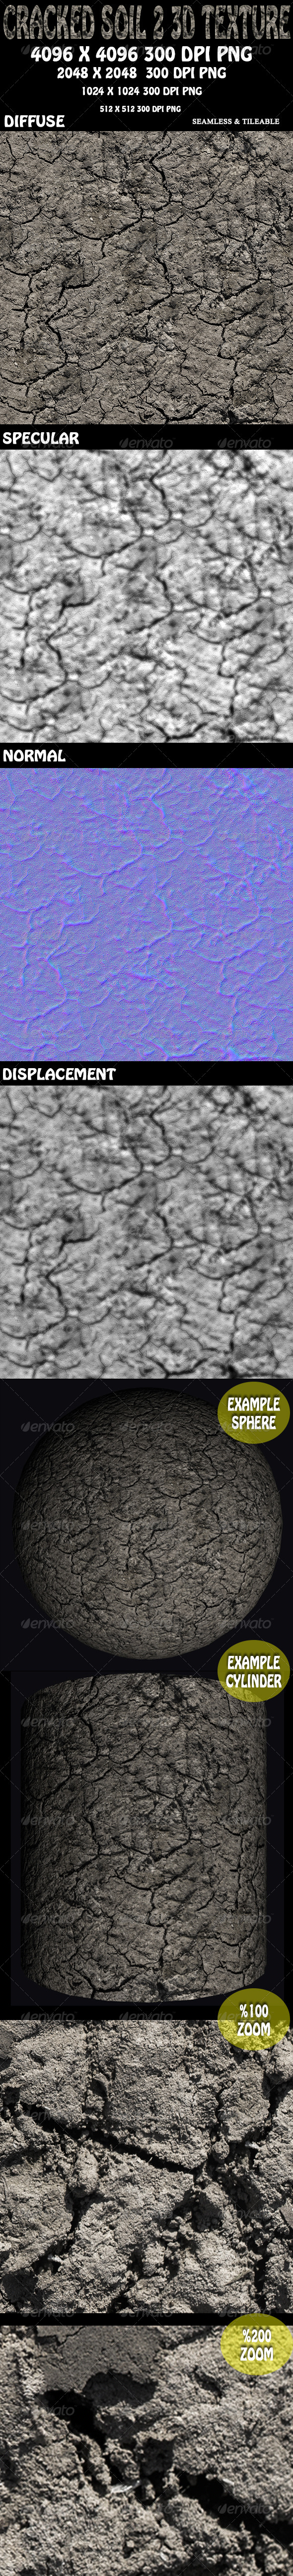 Cracked Soil 2 - 3D Texture - 3DOcean Item for Sale